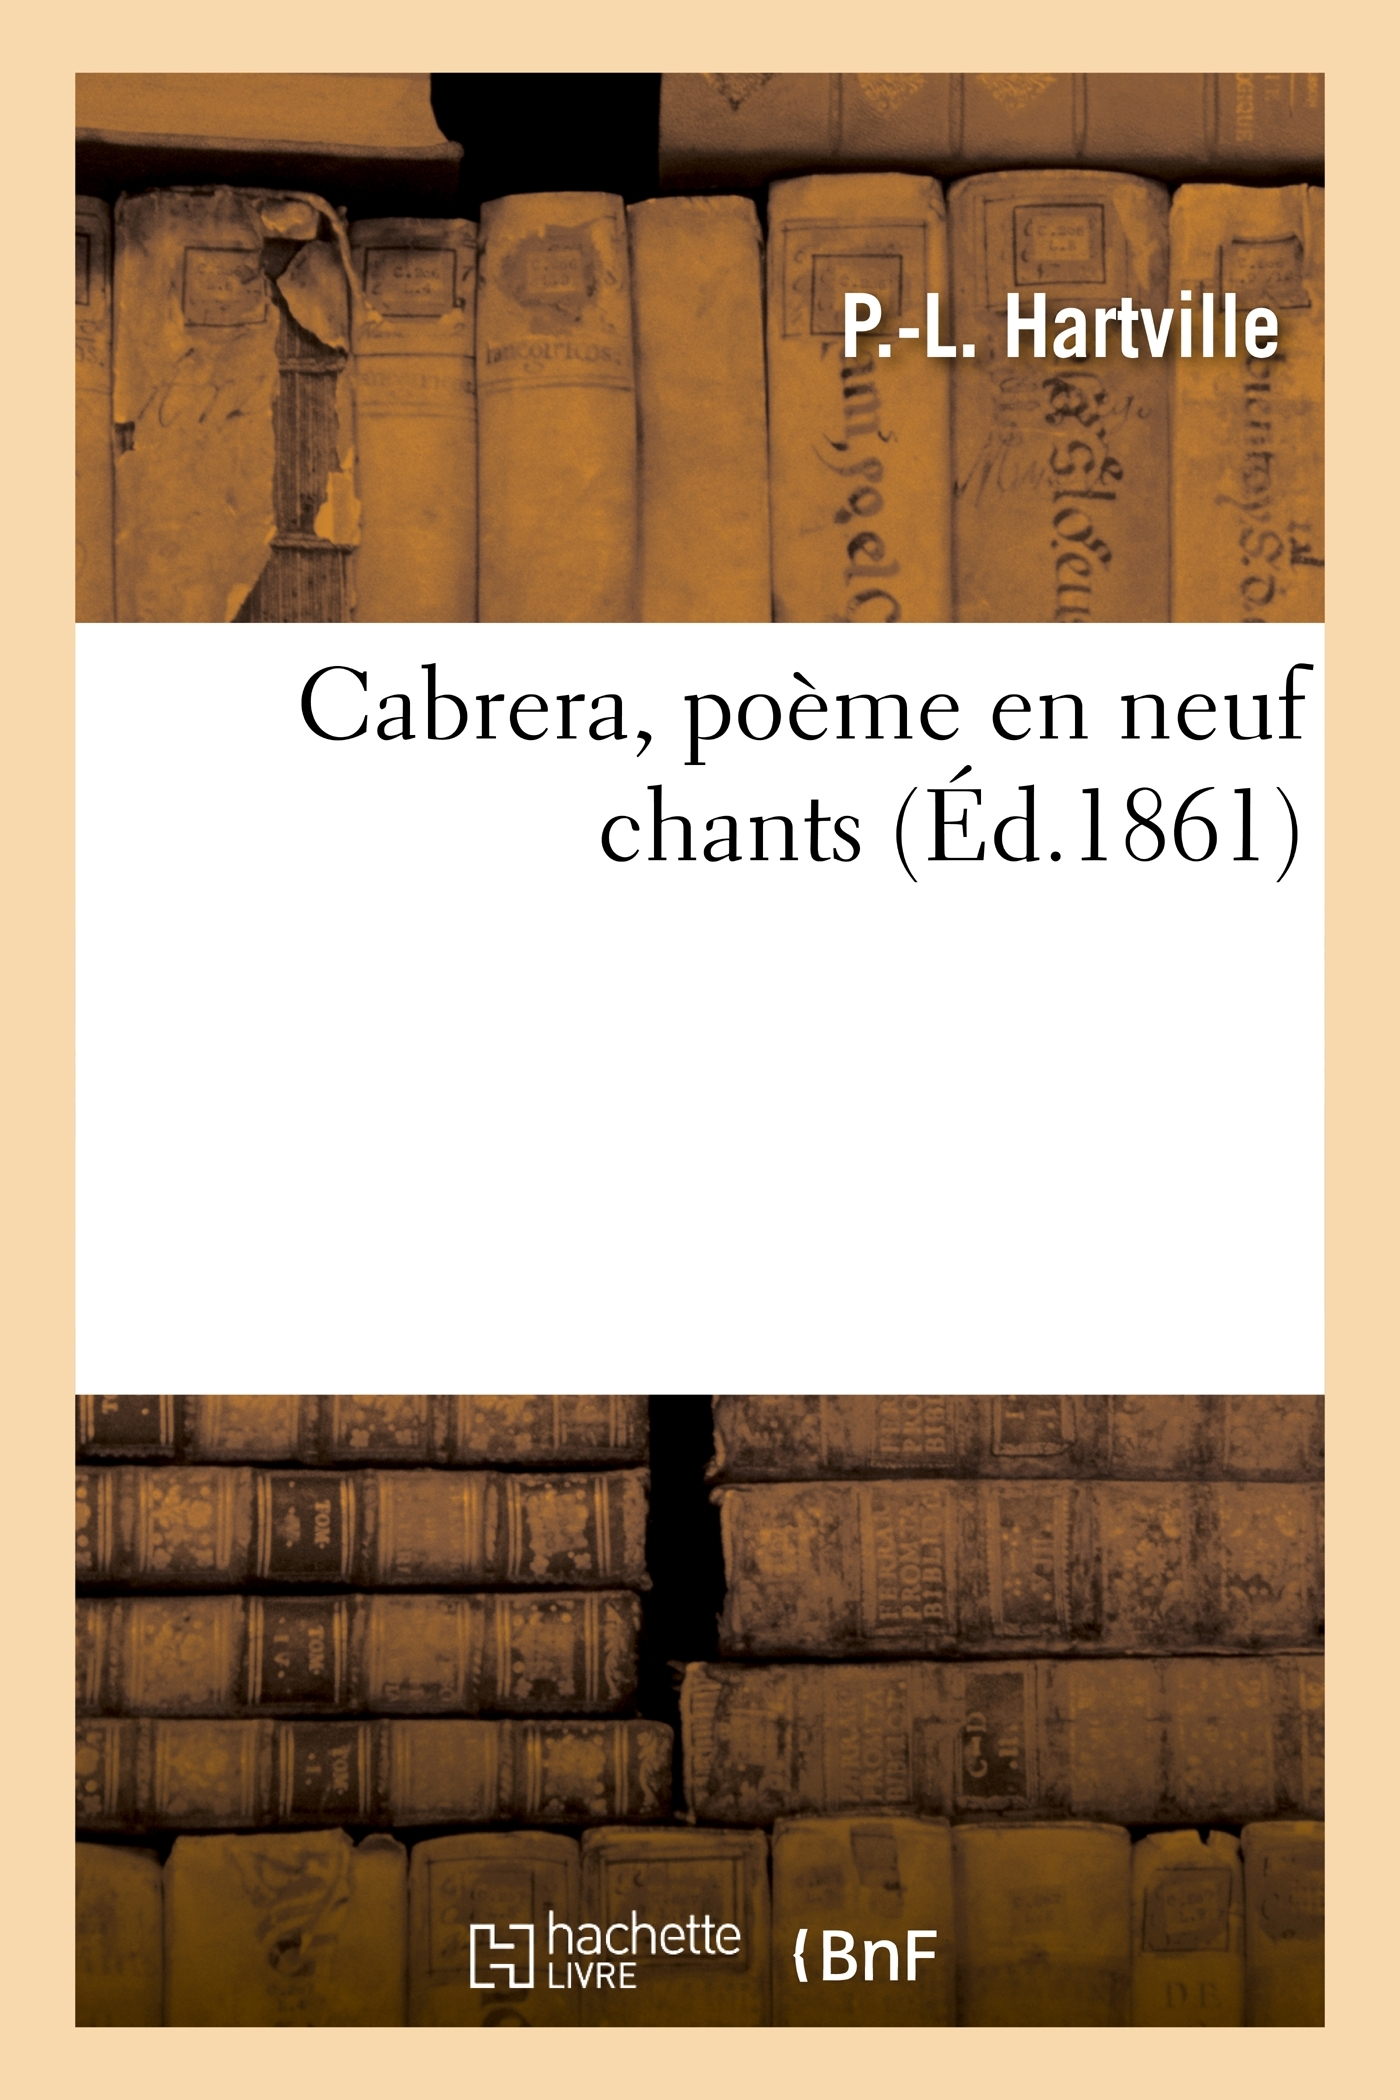 CABRERA, POEME EN NEUF CHANTS